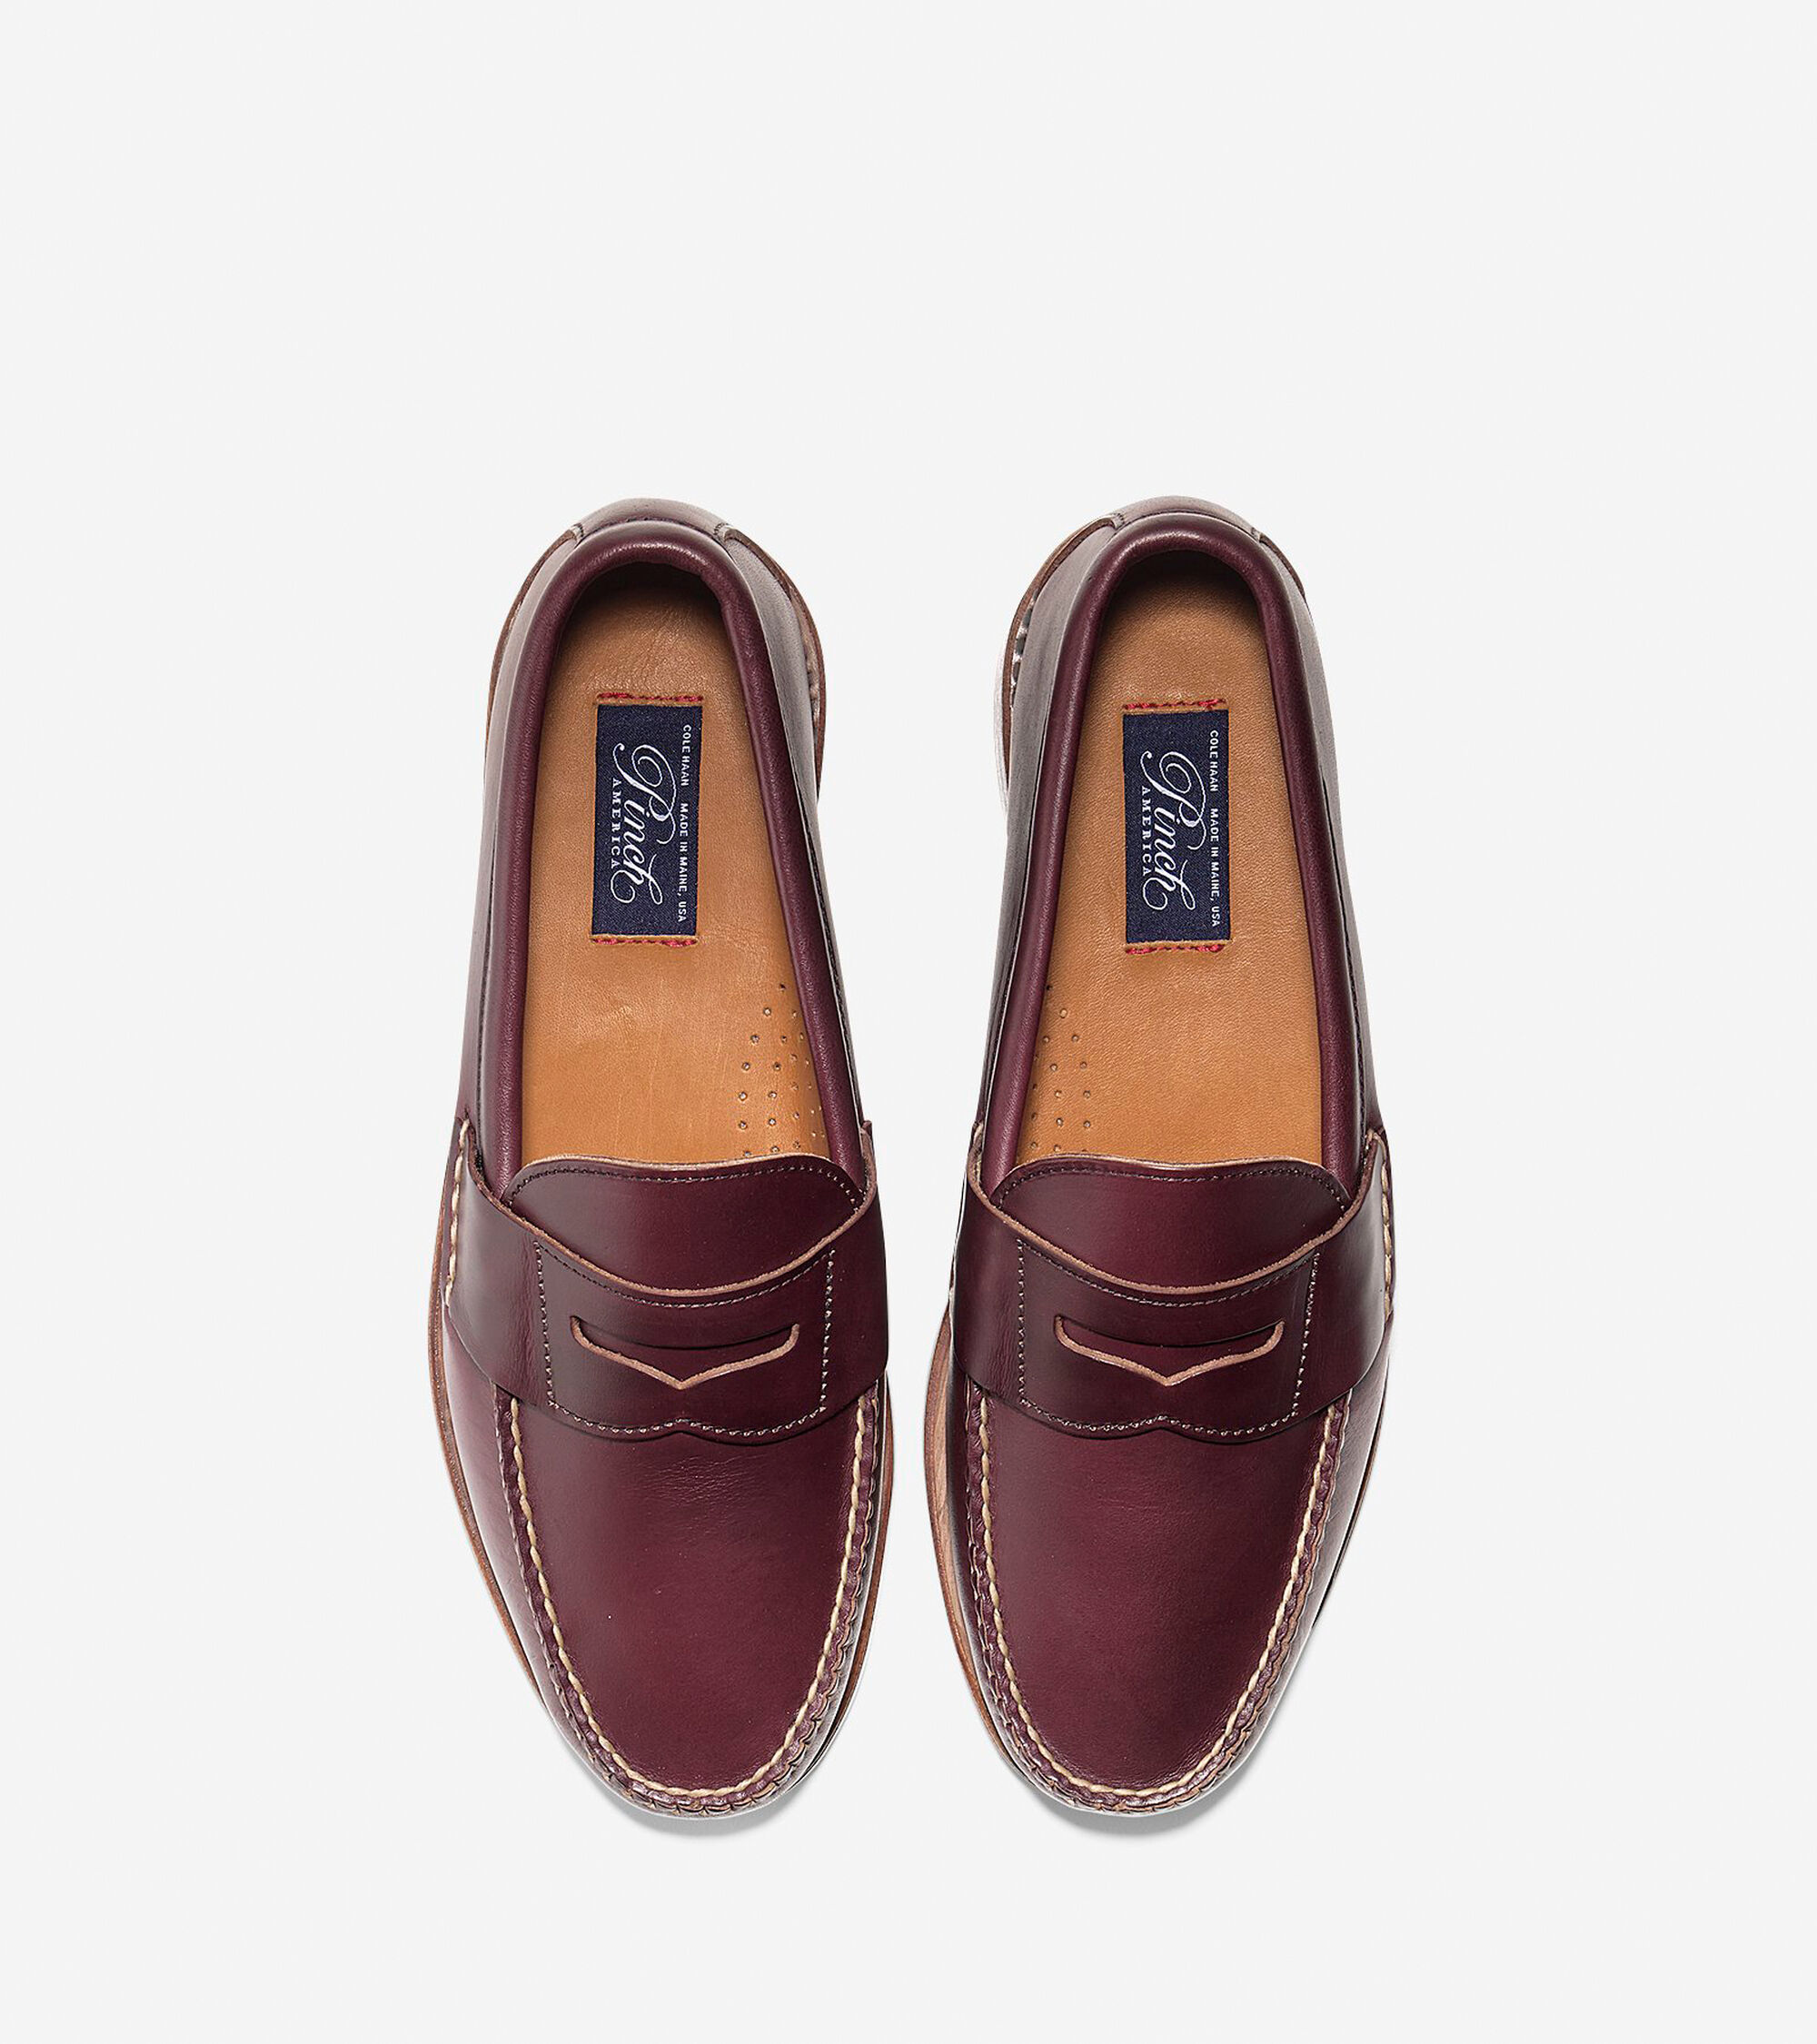 c09b10e6276 Men s Pinch USA Loafers in Burgundy